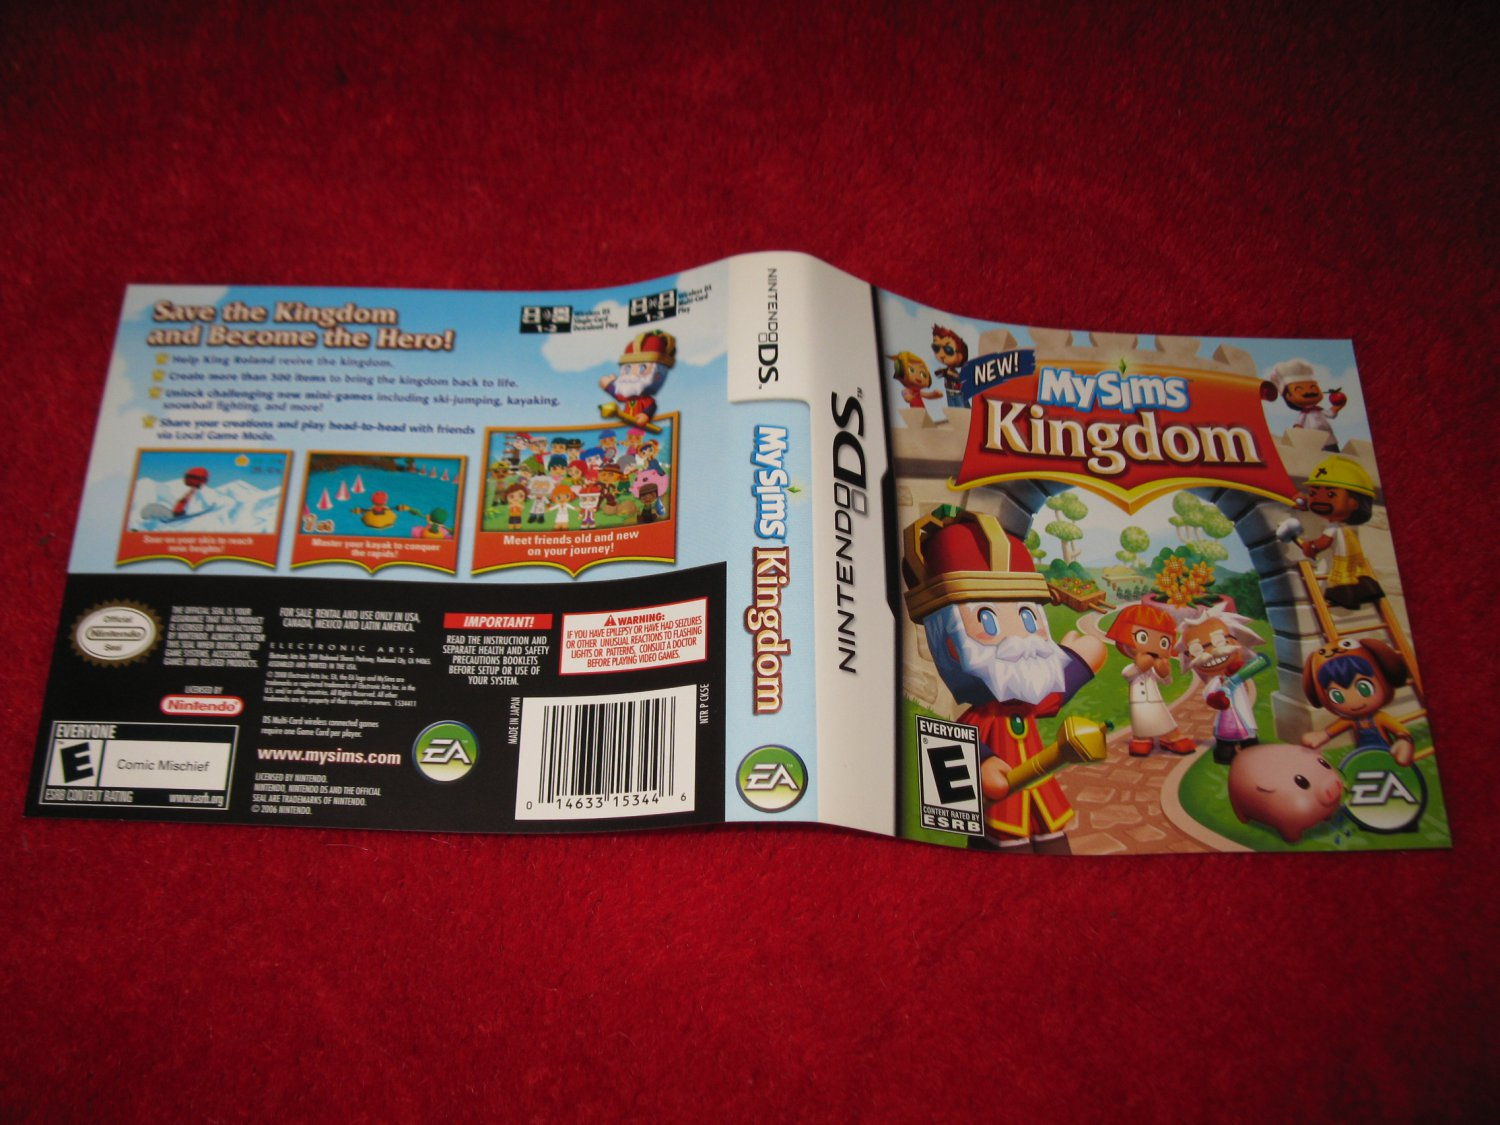 My Sims Kingdom : Nintendo DS Video Game Case Cover Art insert